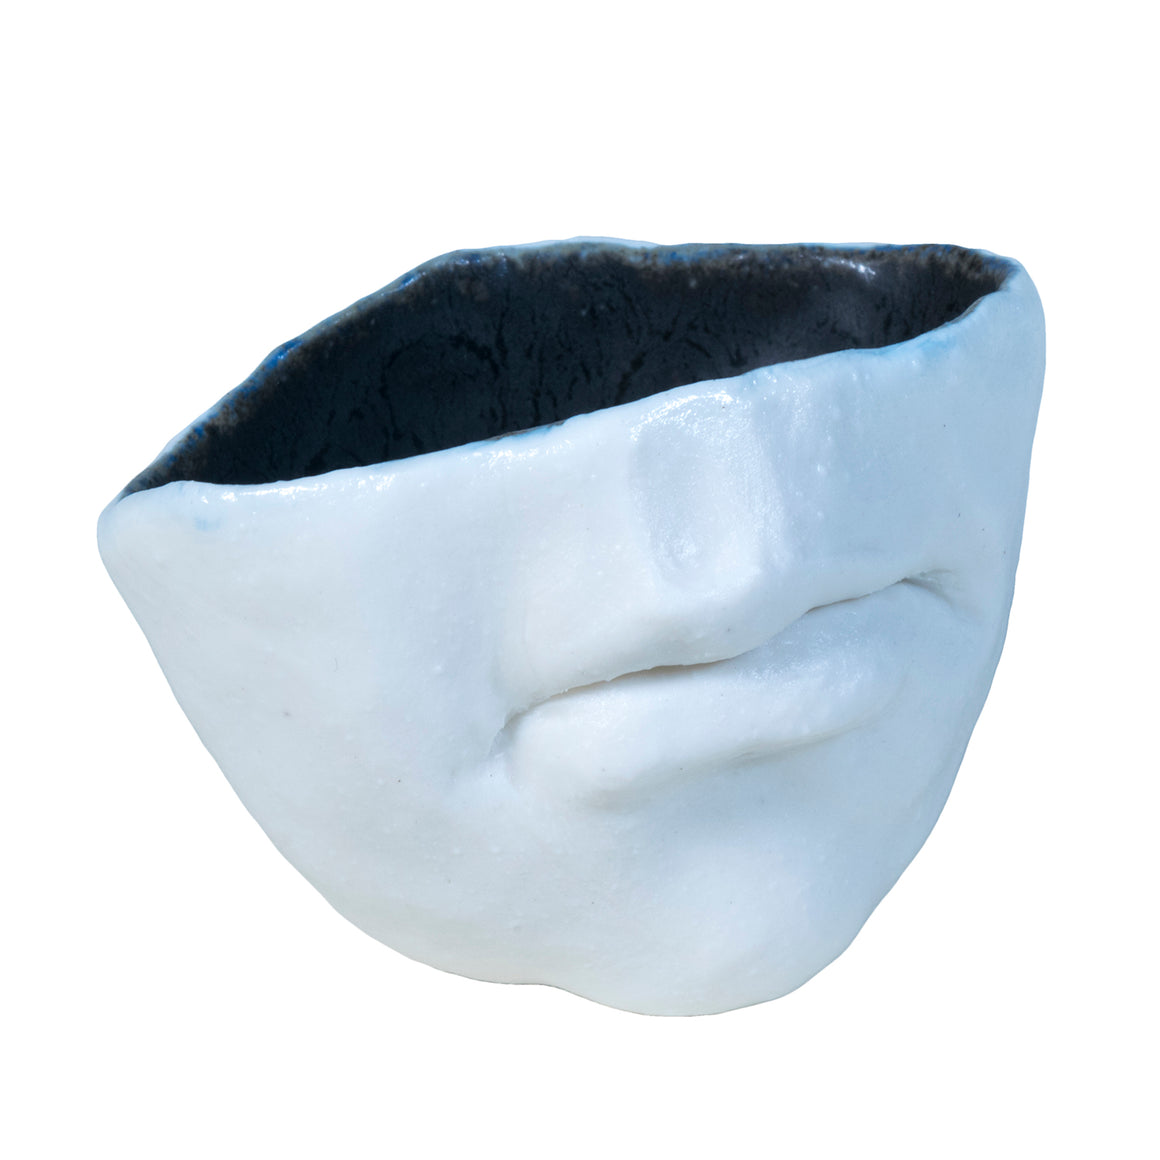 Small Porcelain Mouth Cup / Adrian Arleo